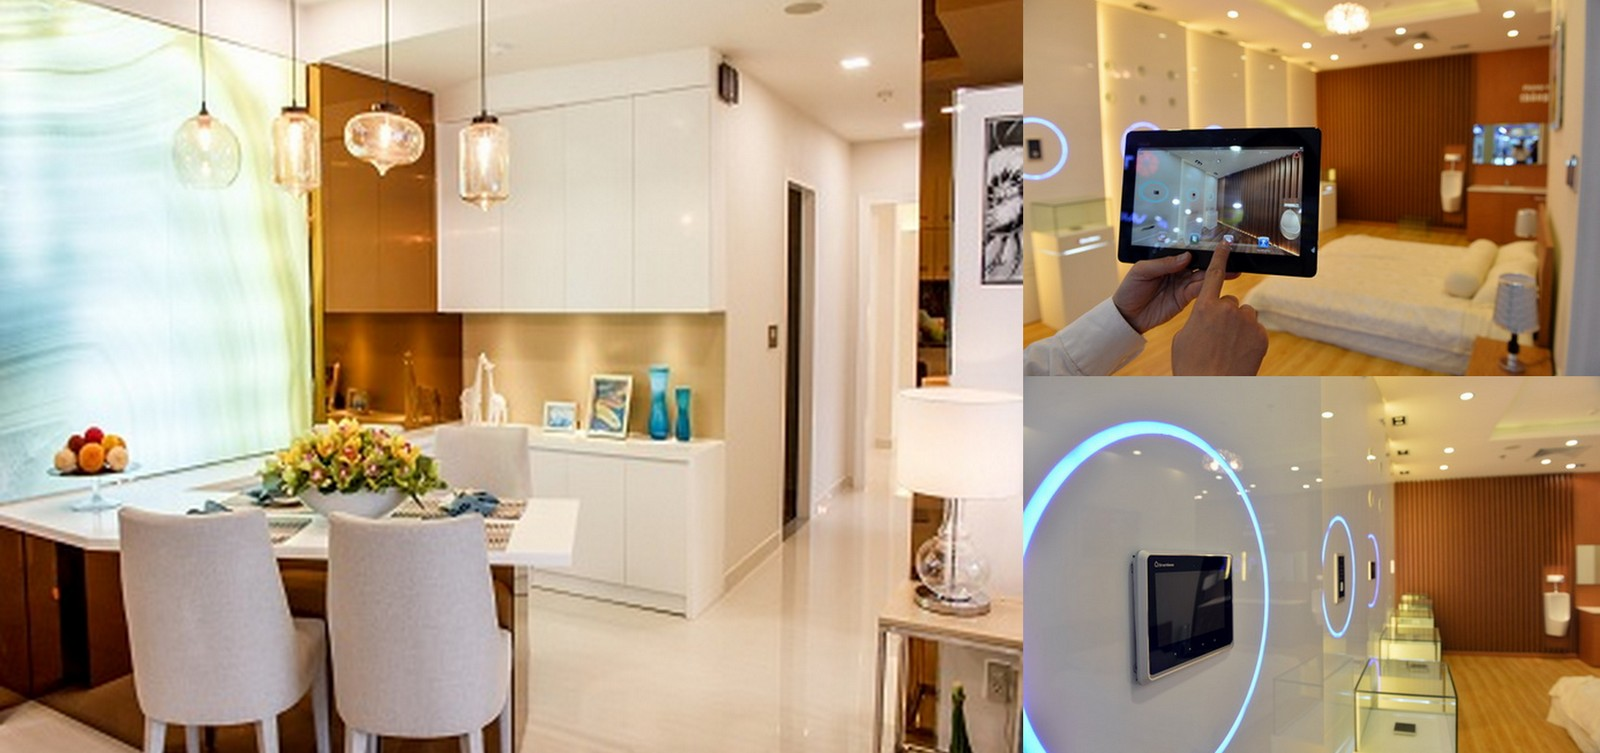 Căn hộ Smart Homes Park Hill Premium